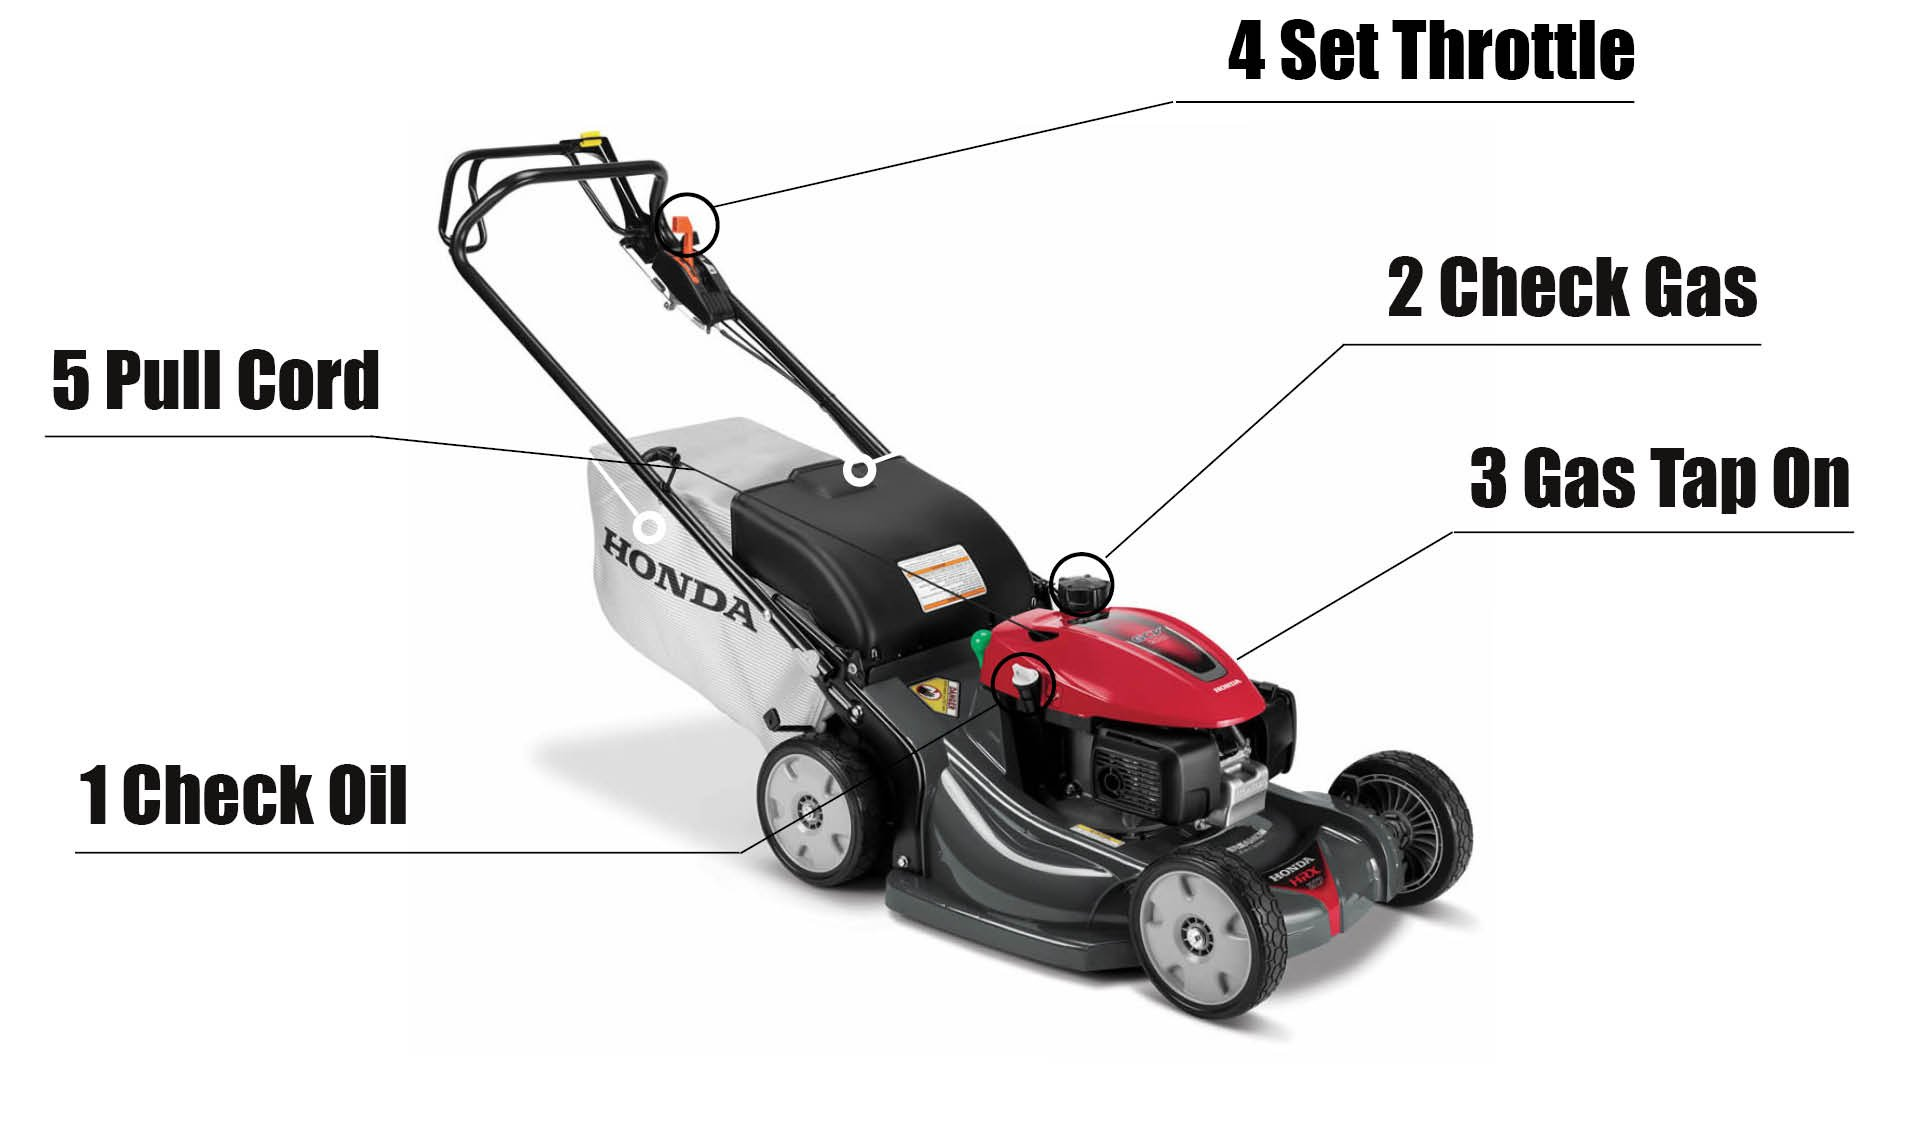 How To Start A Honda Lawn Mower (Foolproof)